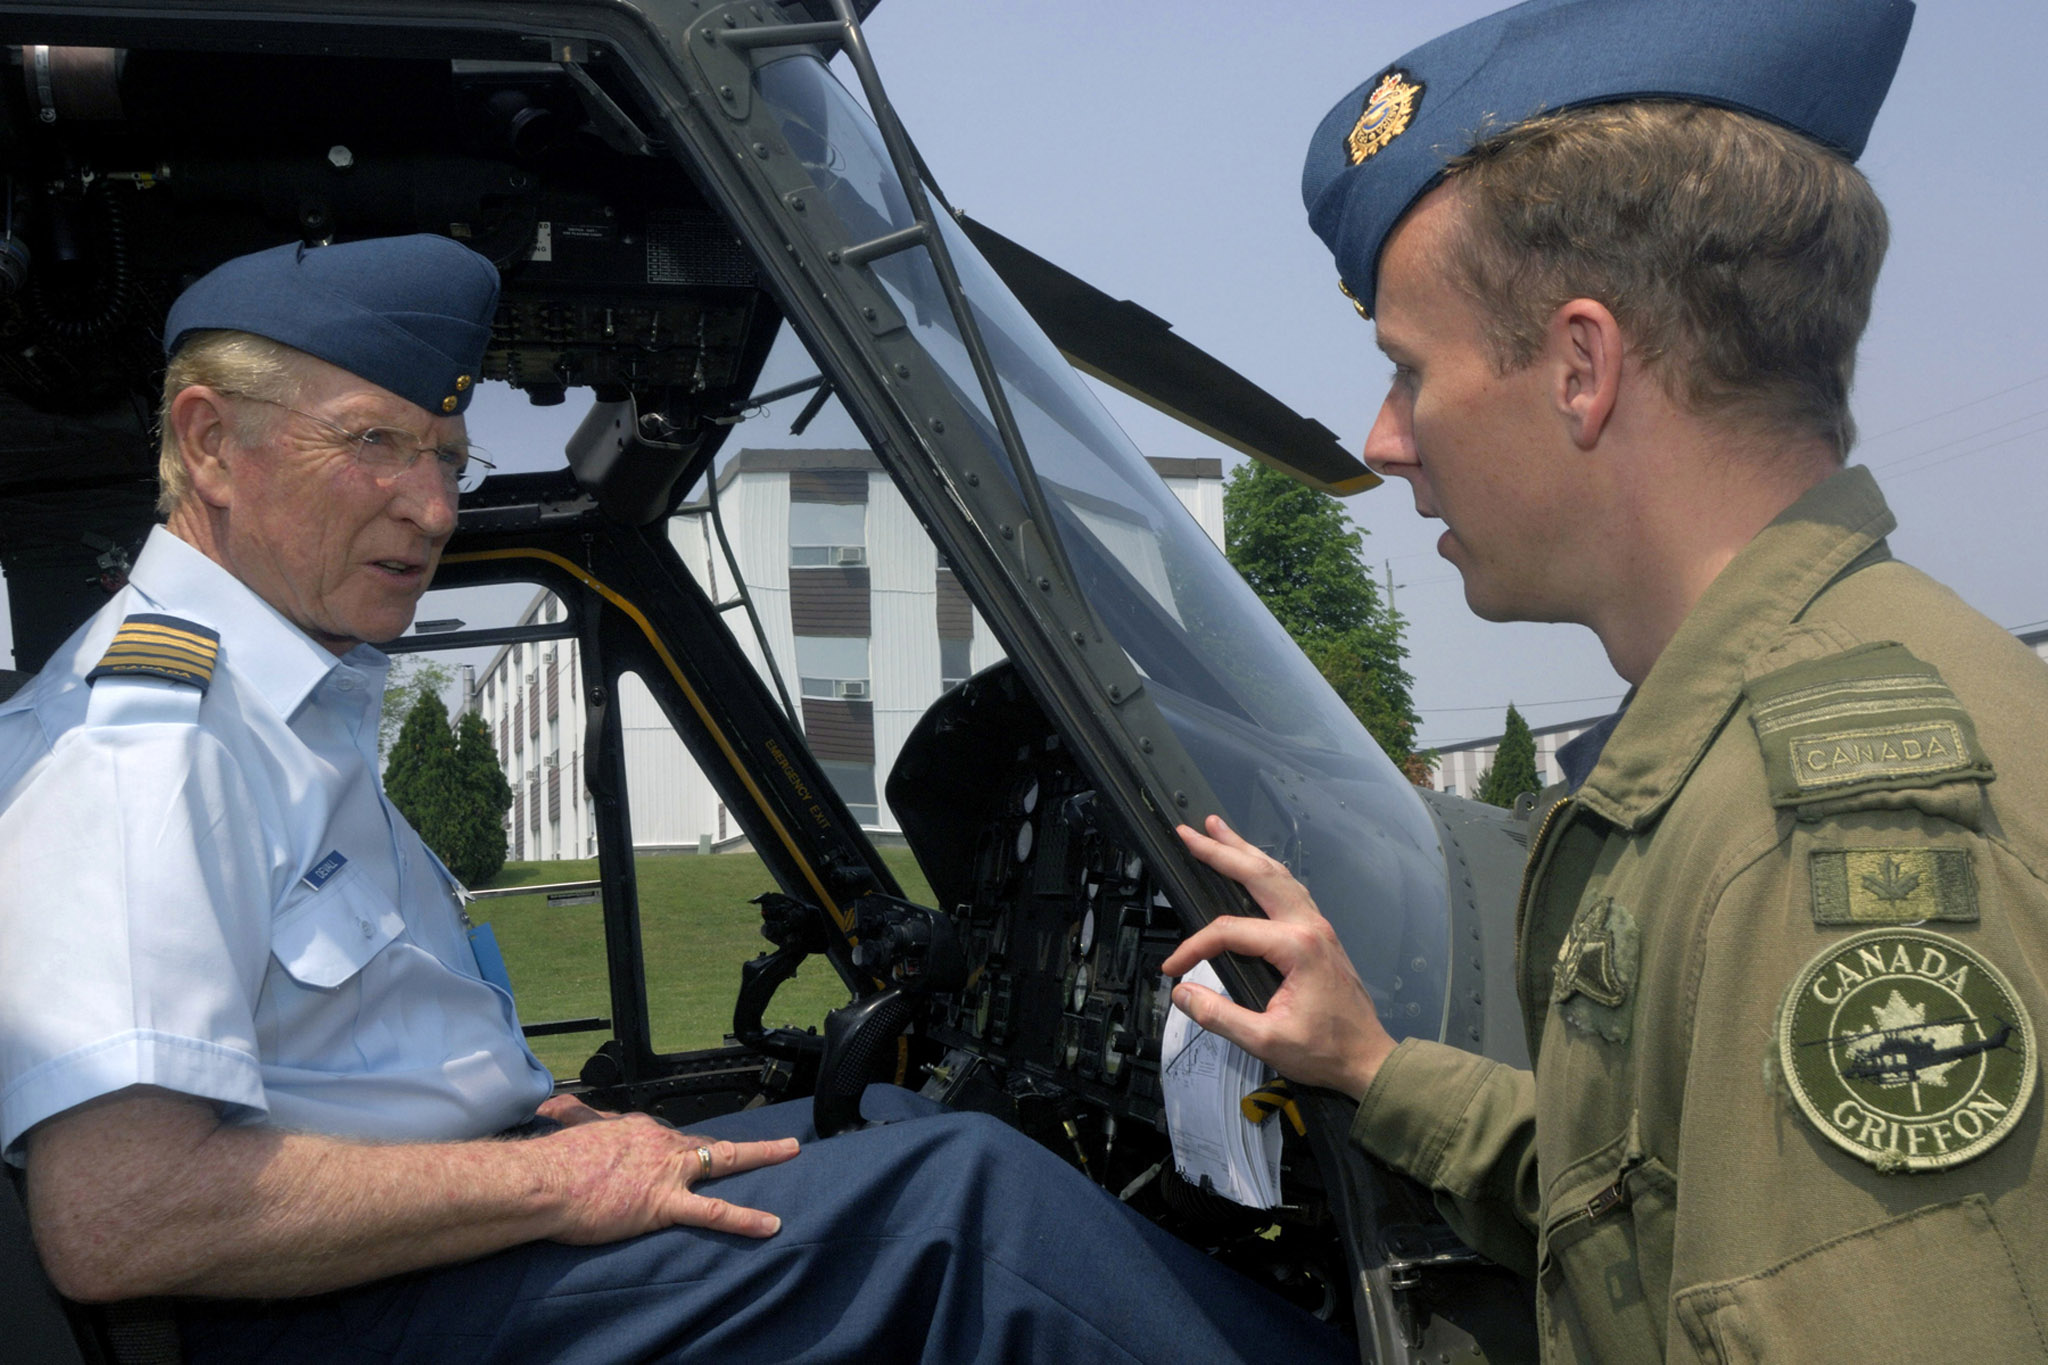 Honorary Colonel Dave Devall (left), a weather specialist with the CTV News Network and honorary colonel of 436 Transport Squadron, located at 8 Wing Trenton, Ontario, chats with Captain Jason Newton, a CH-146 Griffon helicopter pilot with 427 Special Operations Aviation Squadron.